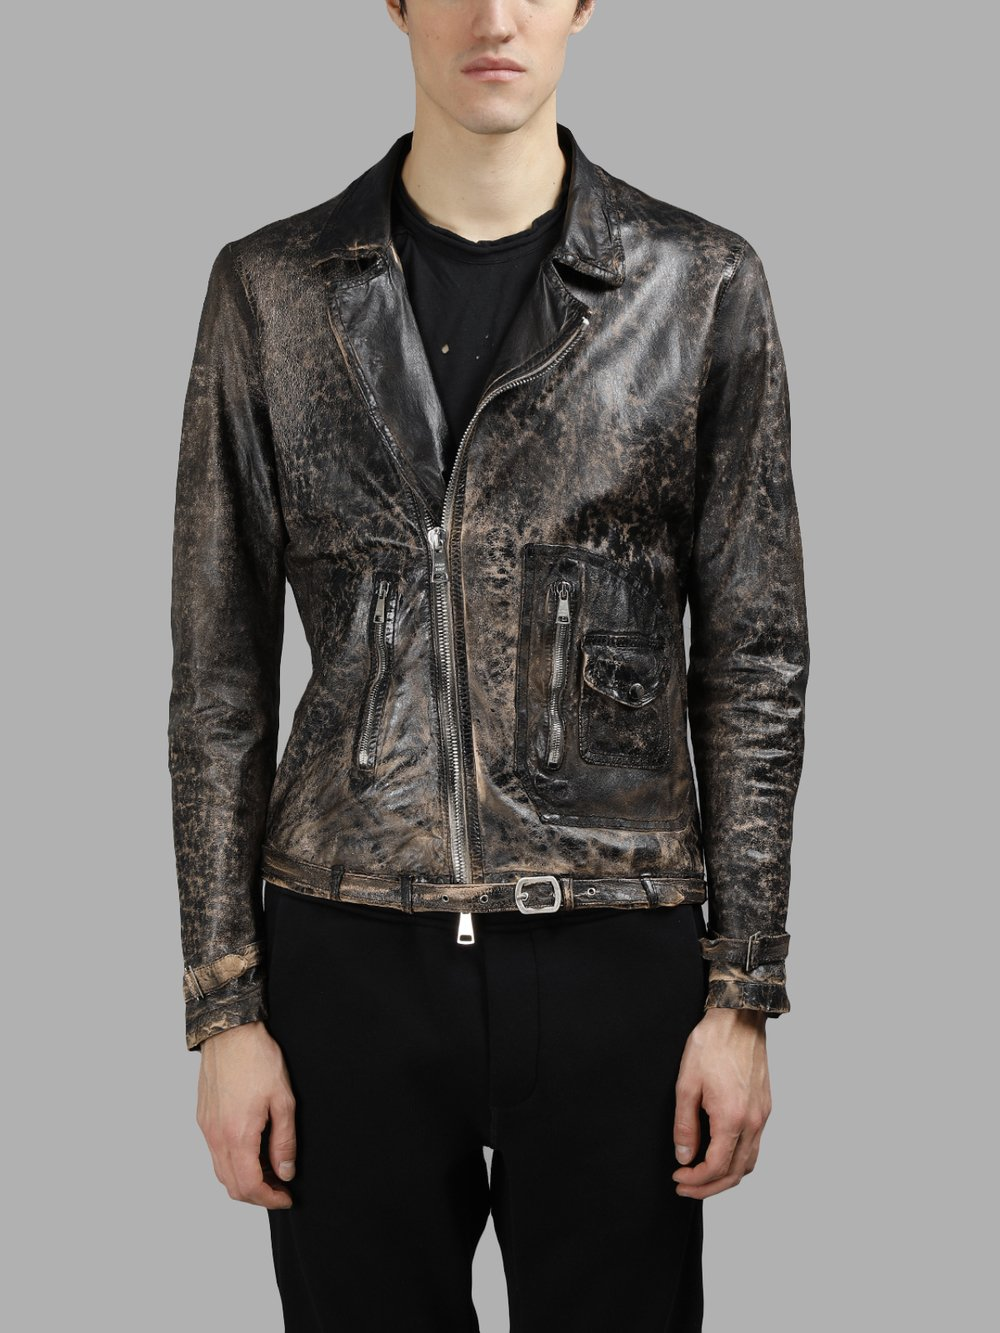 GIORGIO BRATO LEATHER JACKETS